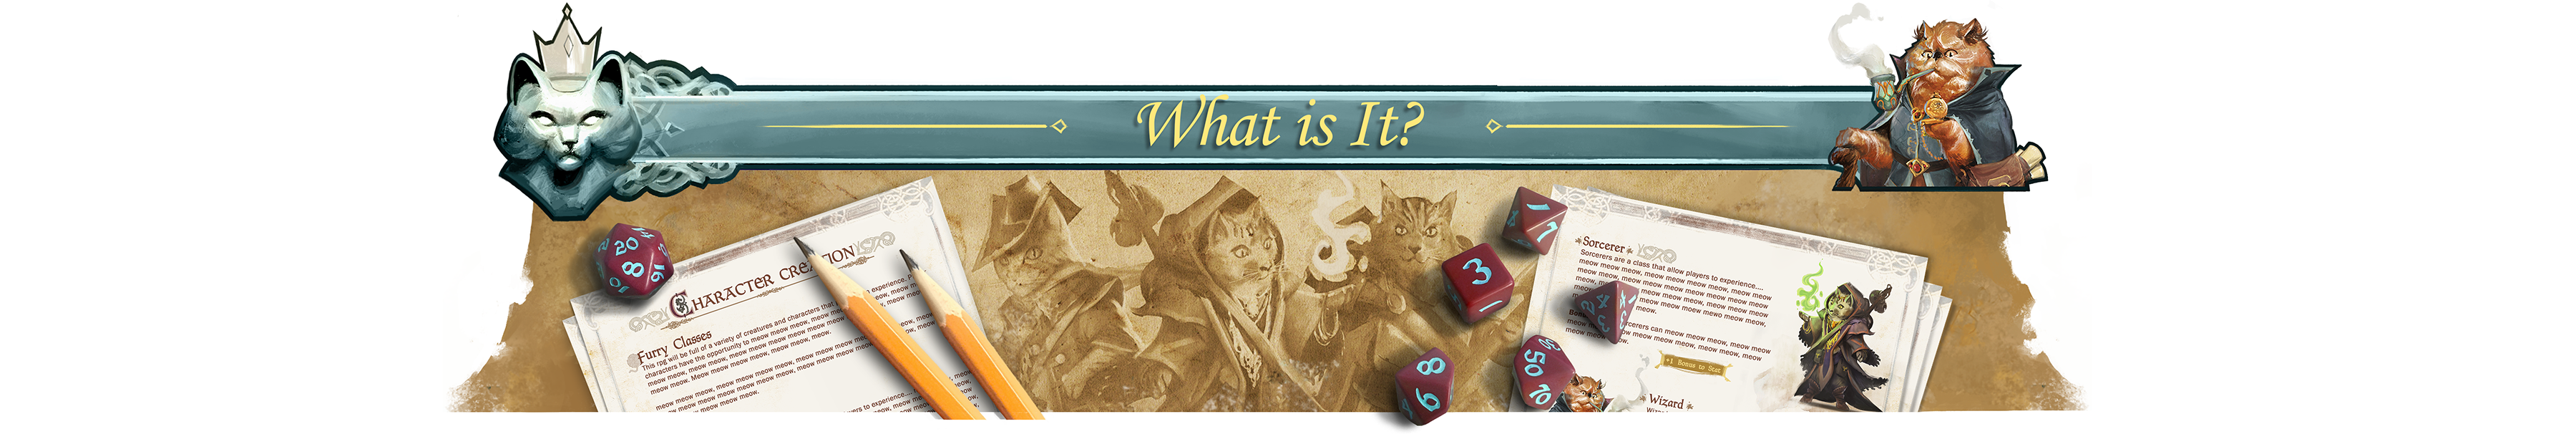 dungeonKats_projectHeader02C.png